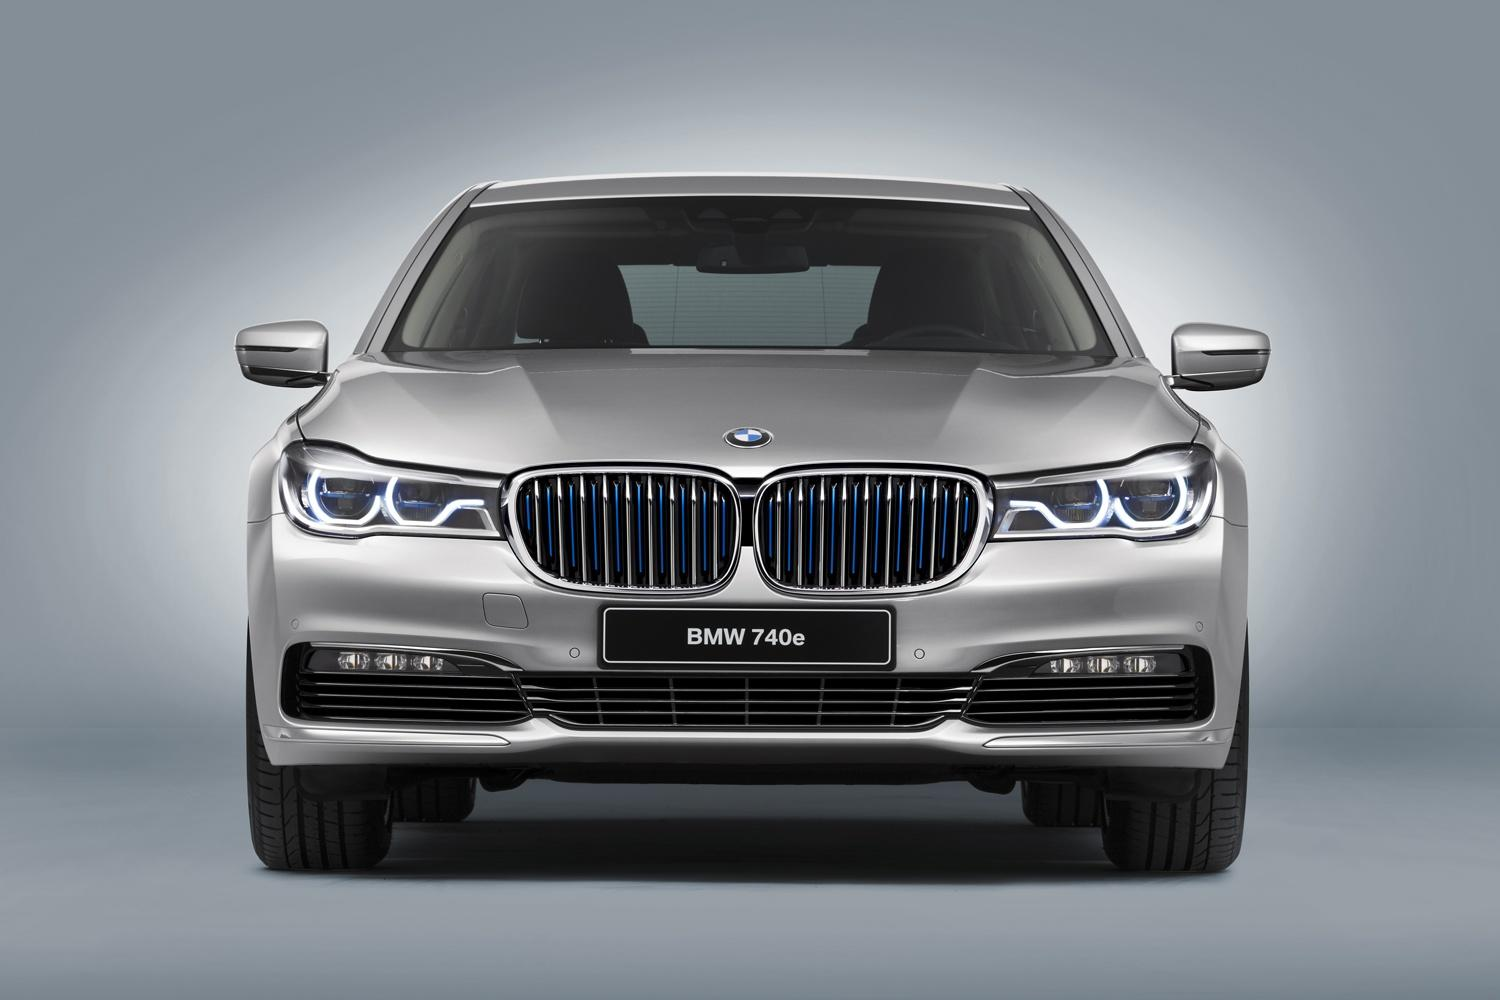 BMW's no-compromise 740e hybrid hits 60 mph in 5.6 seconds yet it returns 112 mpg